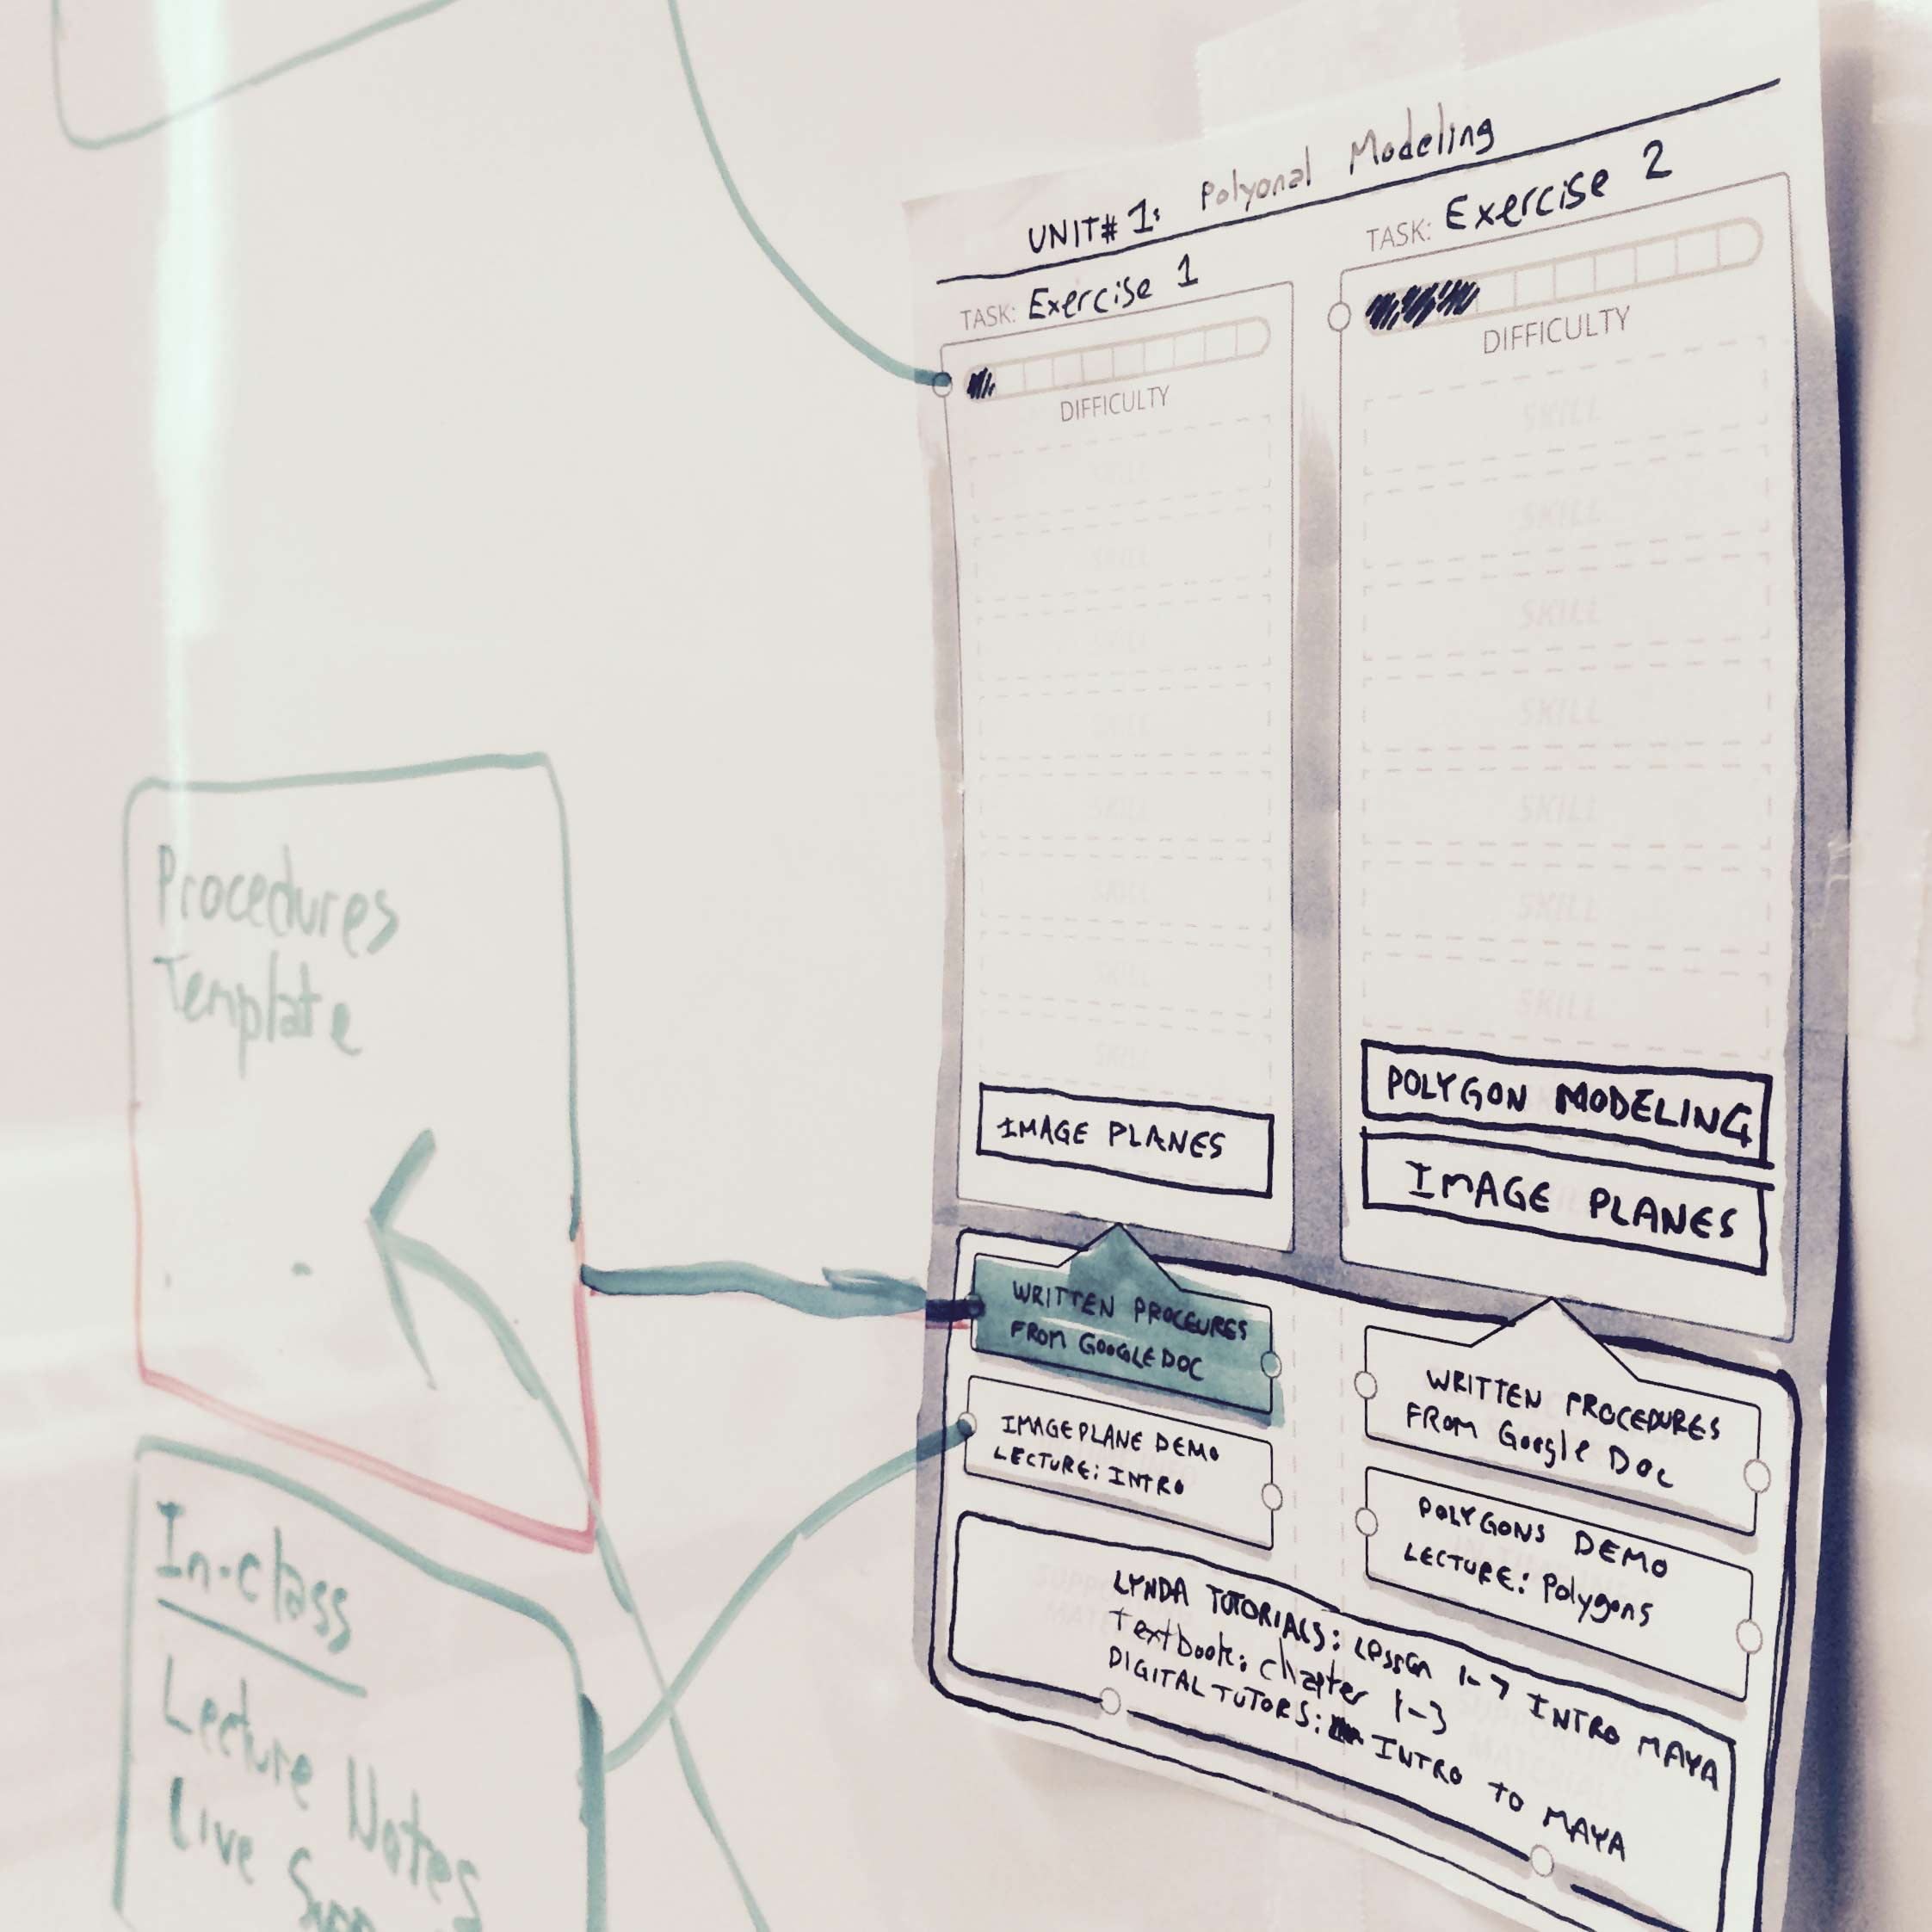 learning task development whiteboard